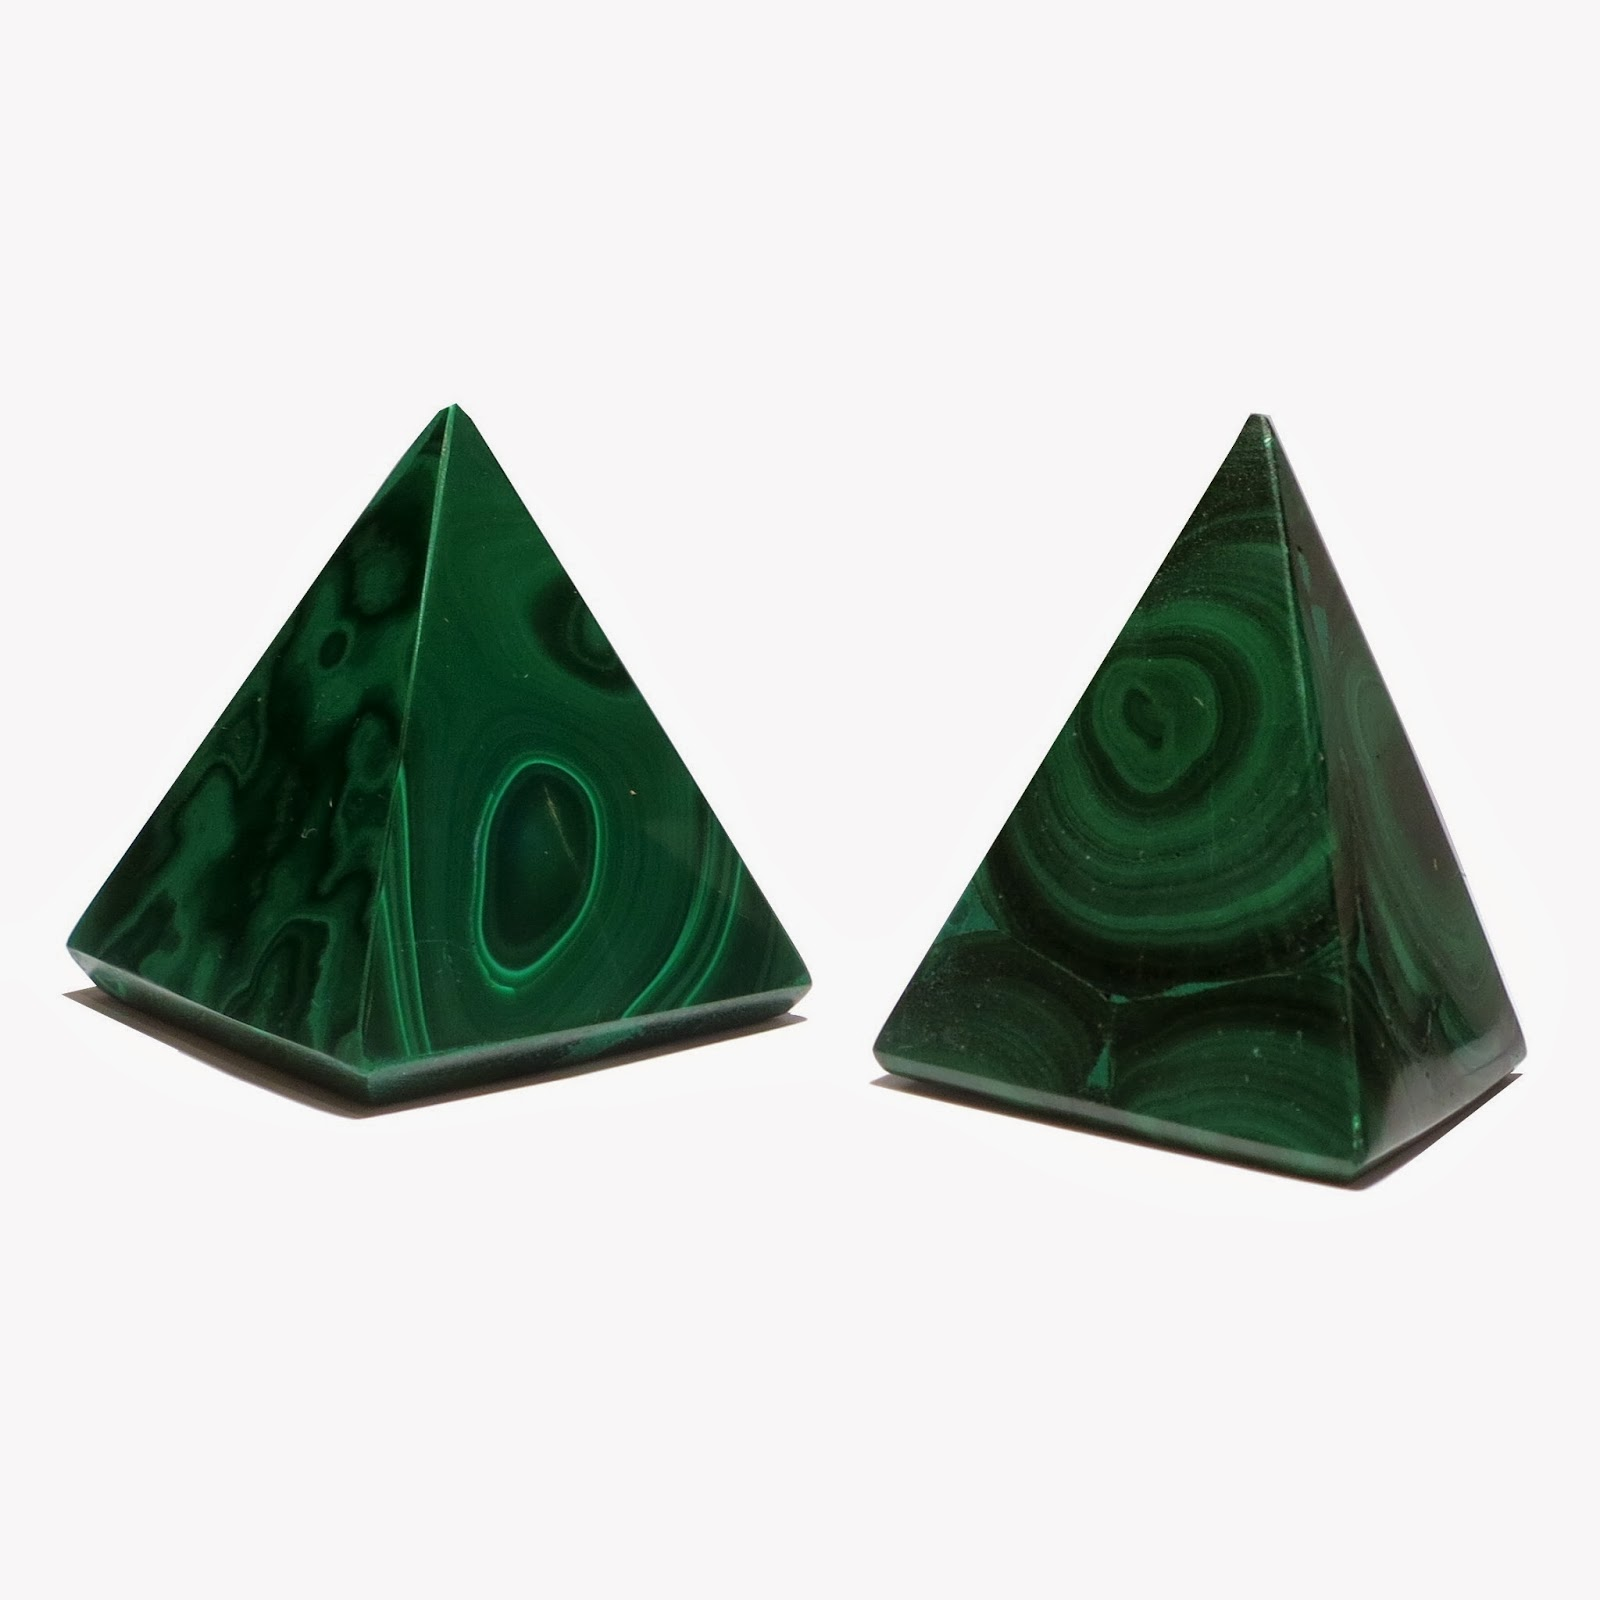 The gallery for --> Pyramid Shaped Objects